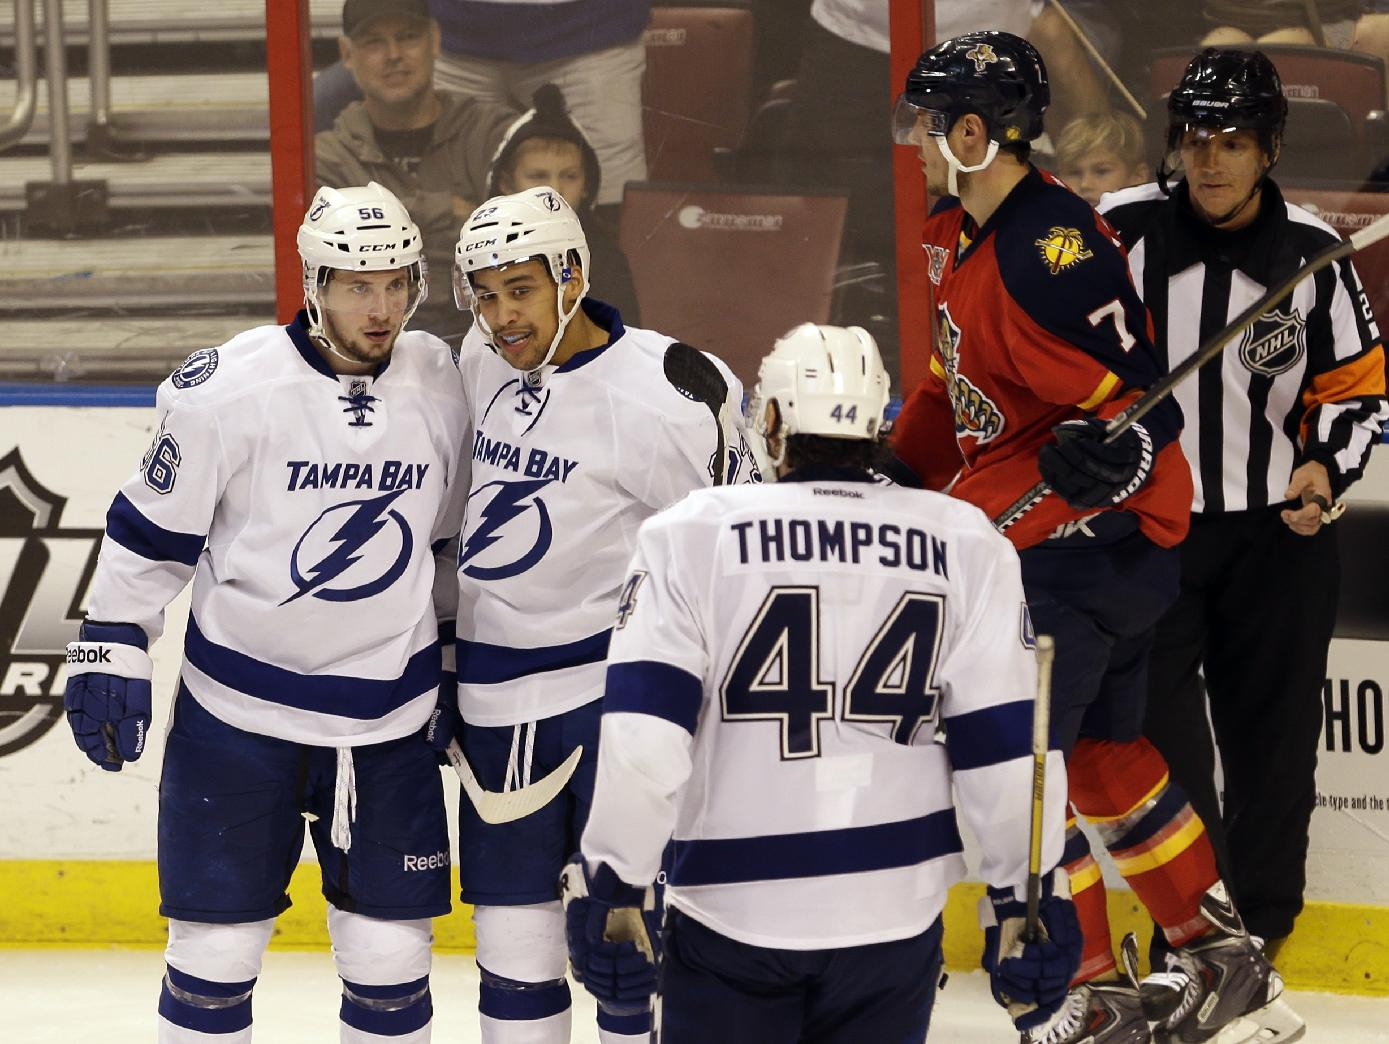 Tampa Bay Lightning right wings Nikita Kucherov (56) and J.T. Brown, second from left, celebrate after Brown scored against the Florida Panthers during the third period of an NHL hockey game in Sunrise, Fla., Monday, Dec. 23, 2013. Tampa Bay won 6-1